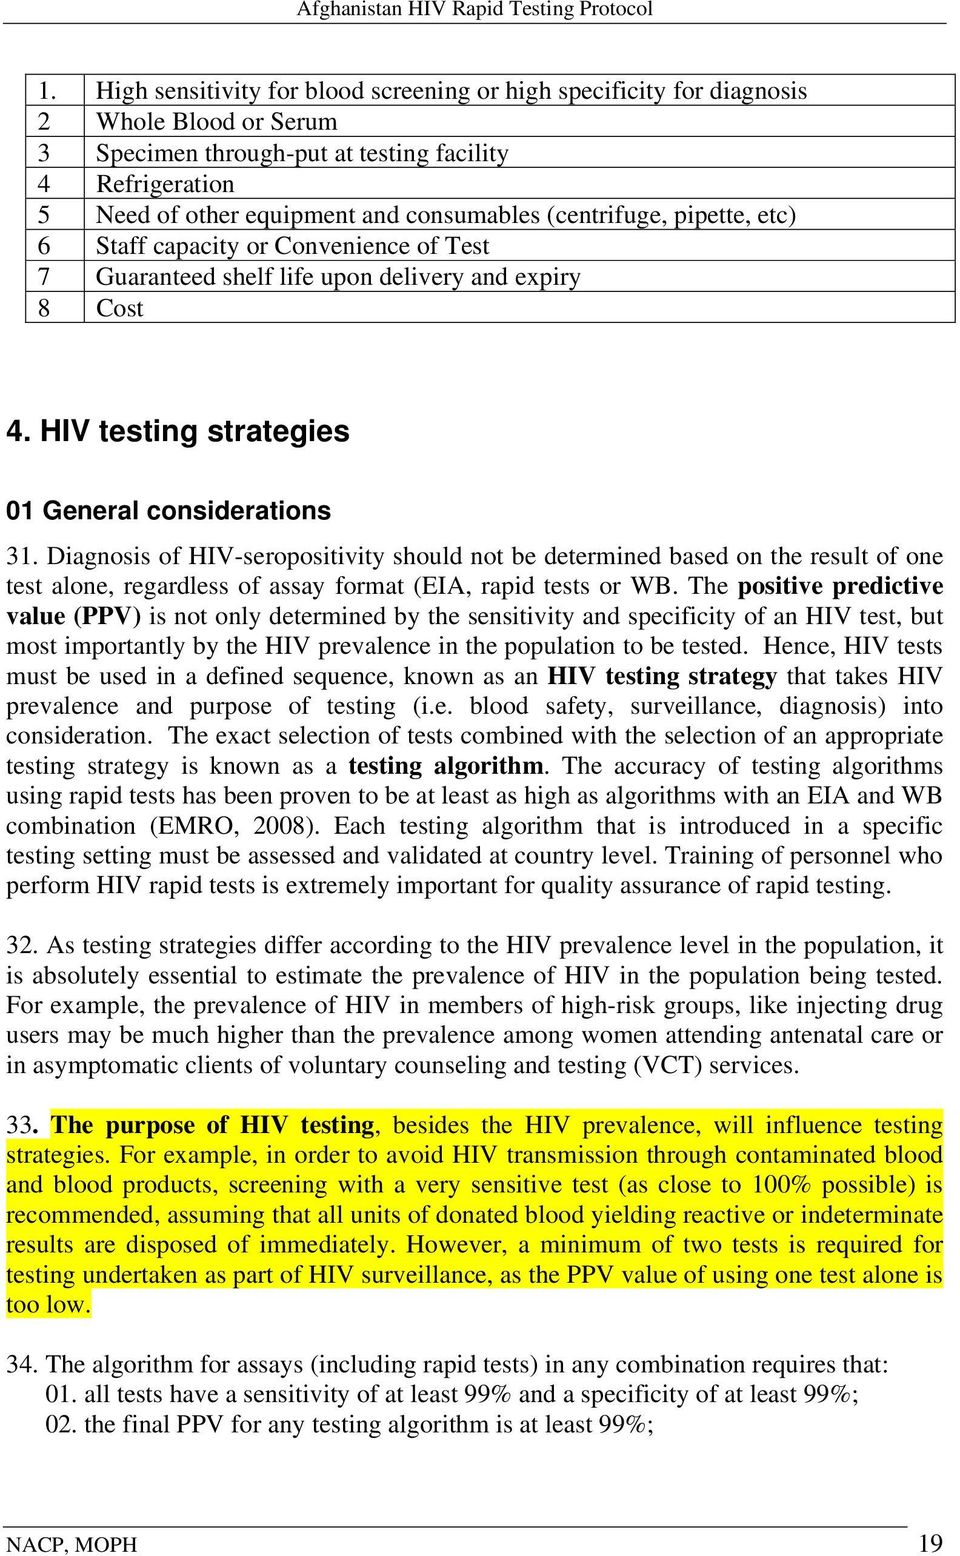 Diagnosis of HIV-seropositivity should not be determined based on the result of one test alone, regardless of assay format (EIA, rapid tests or WB.